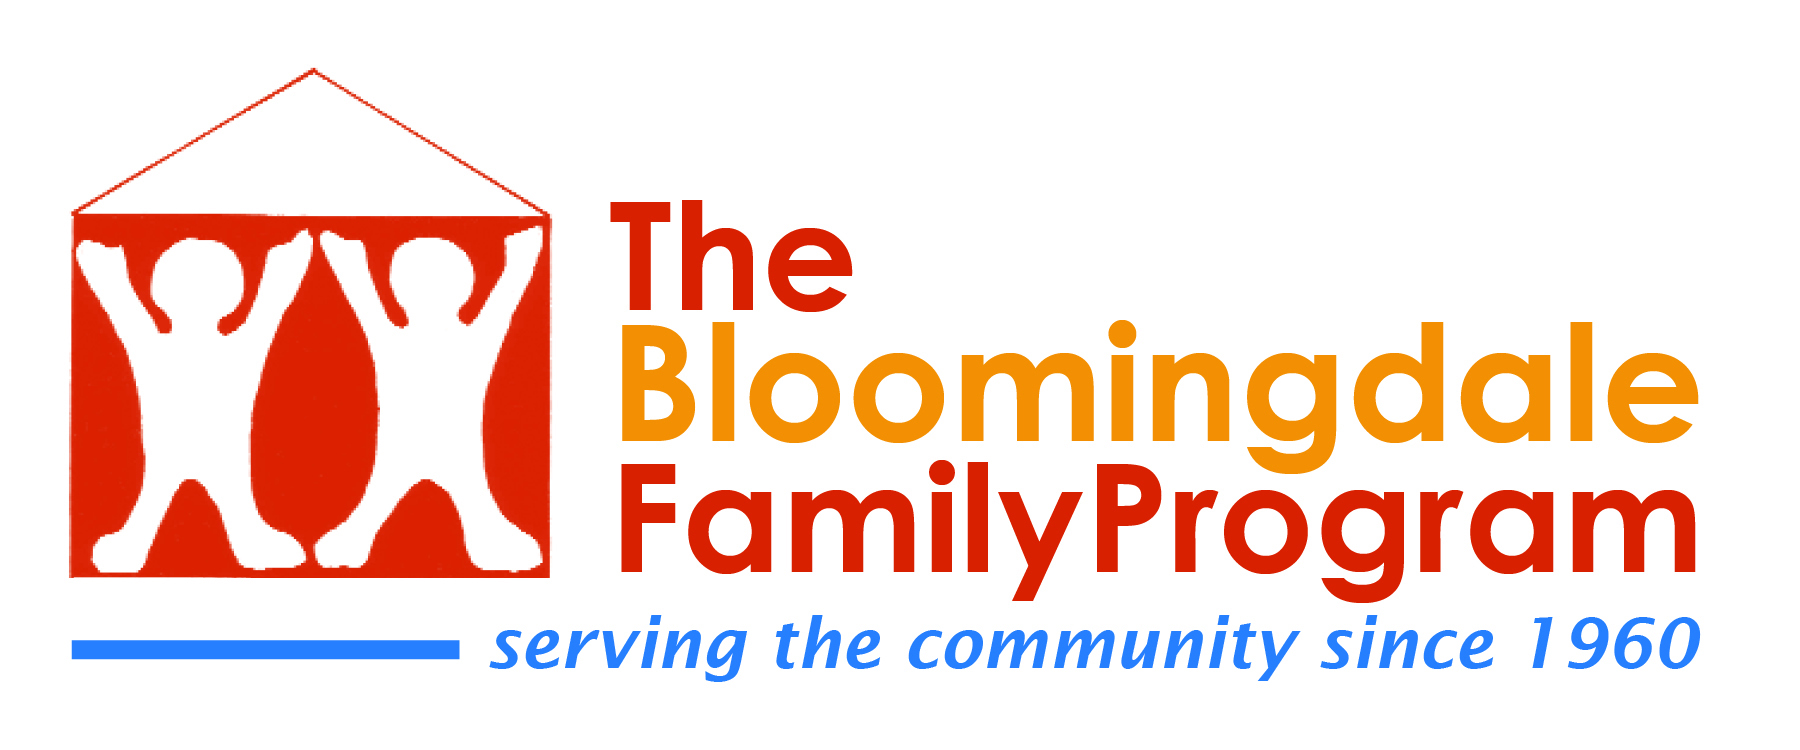 Bloomingdale Family Program: Serving the Community Since 1960